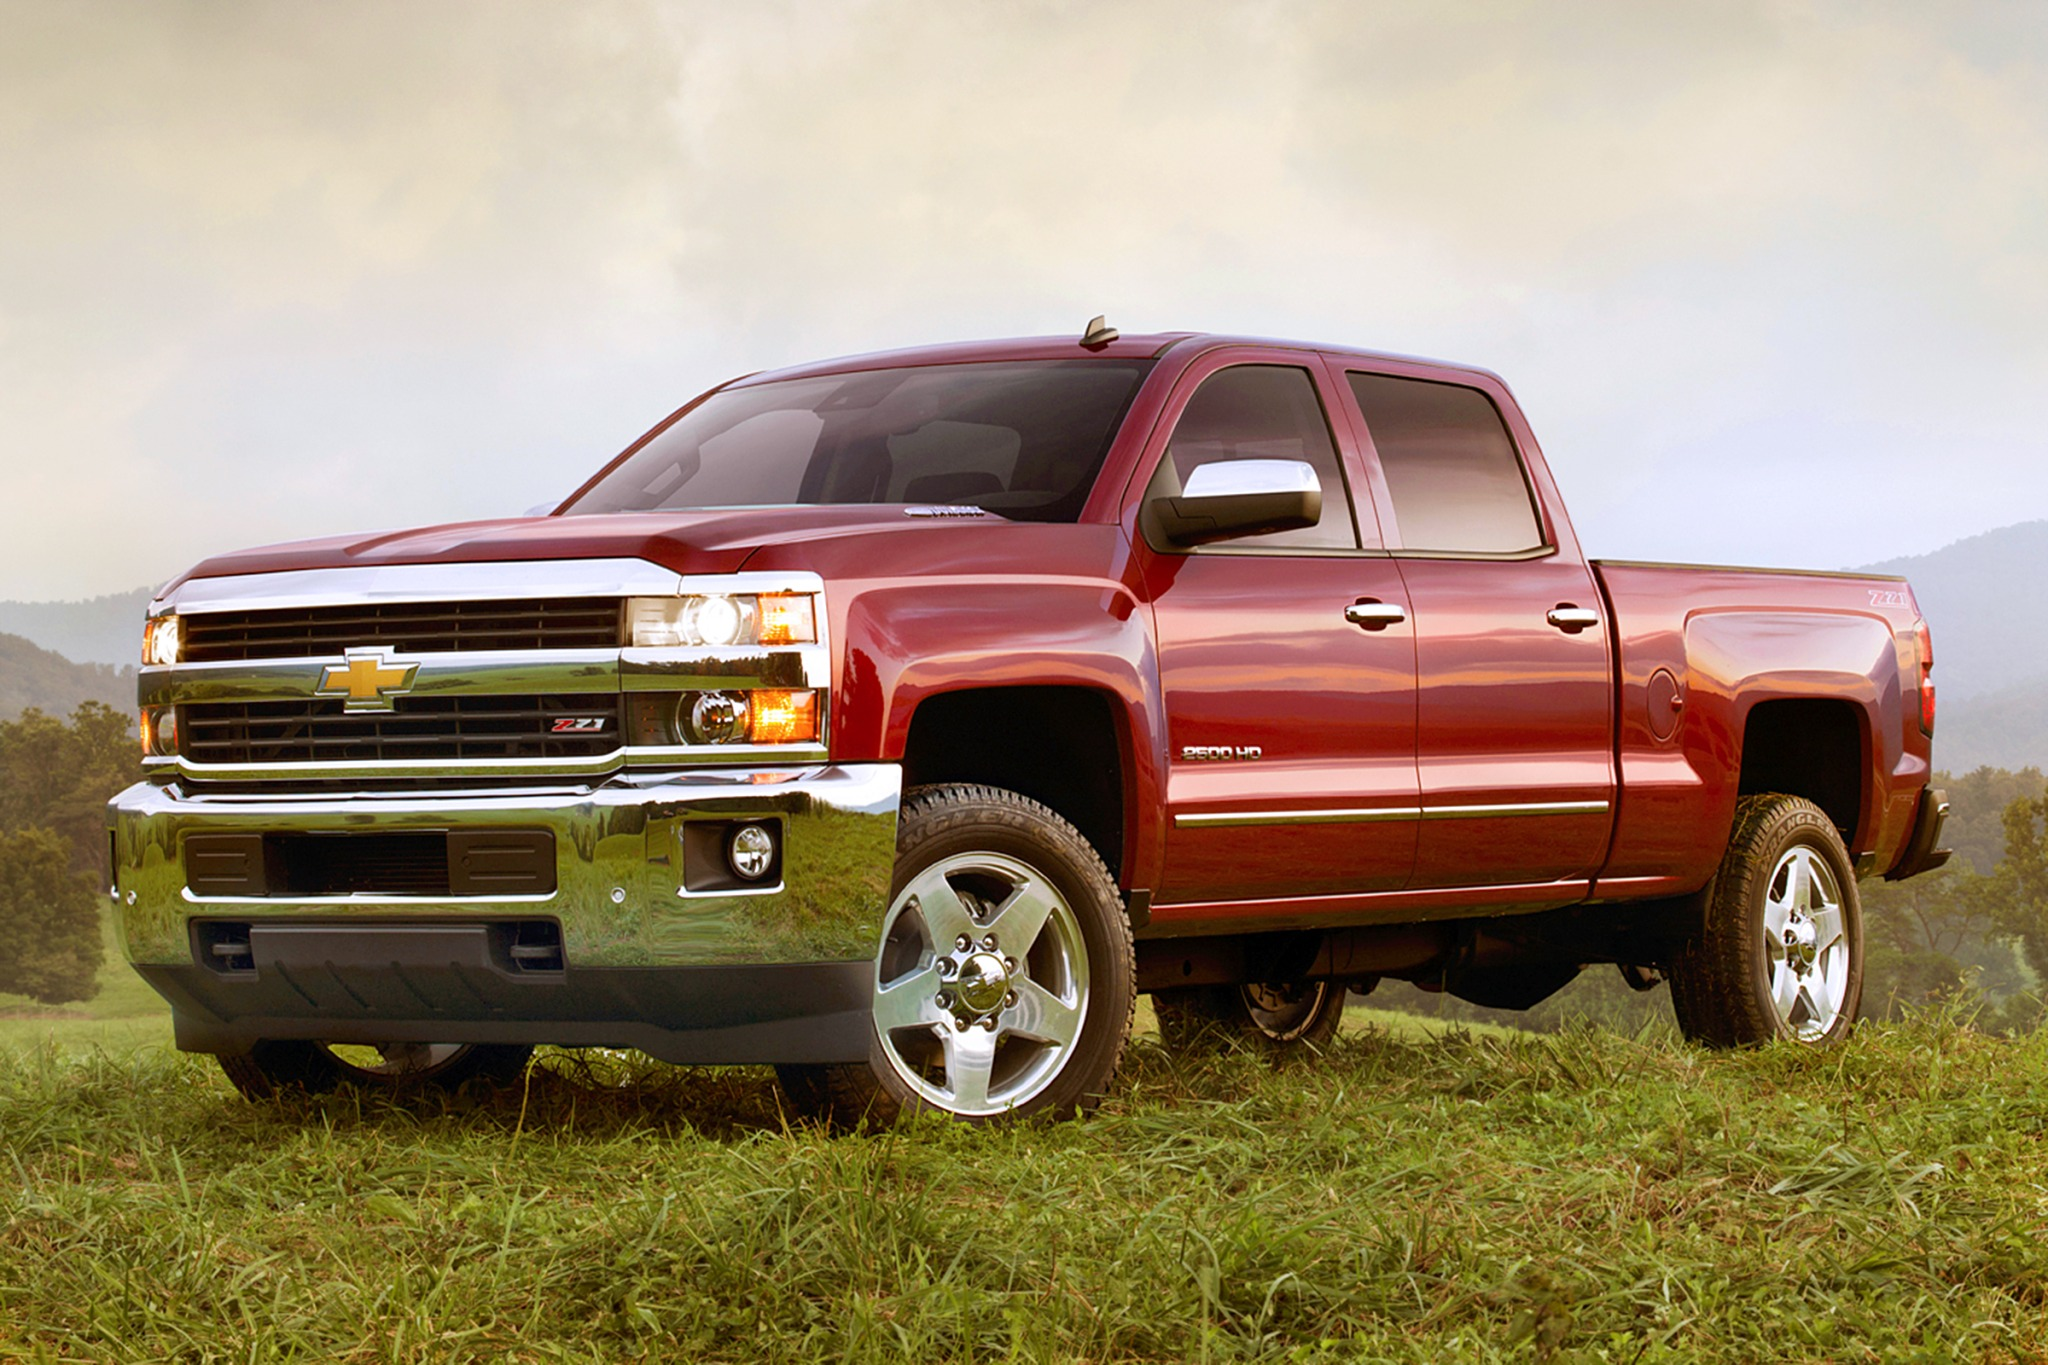 2017 Chevrolet Silverado 3500 HD LTZ Crew Cab photo - 3